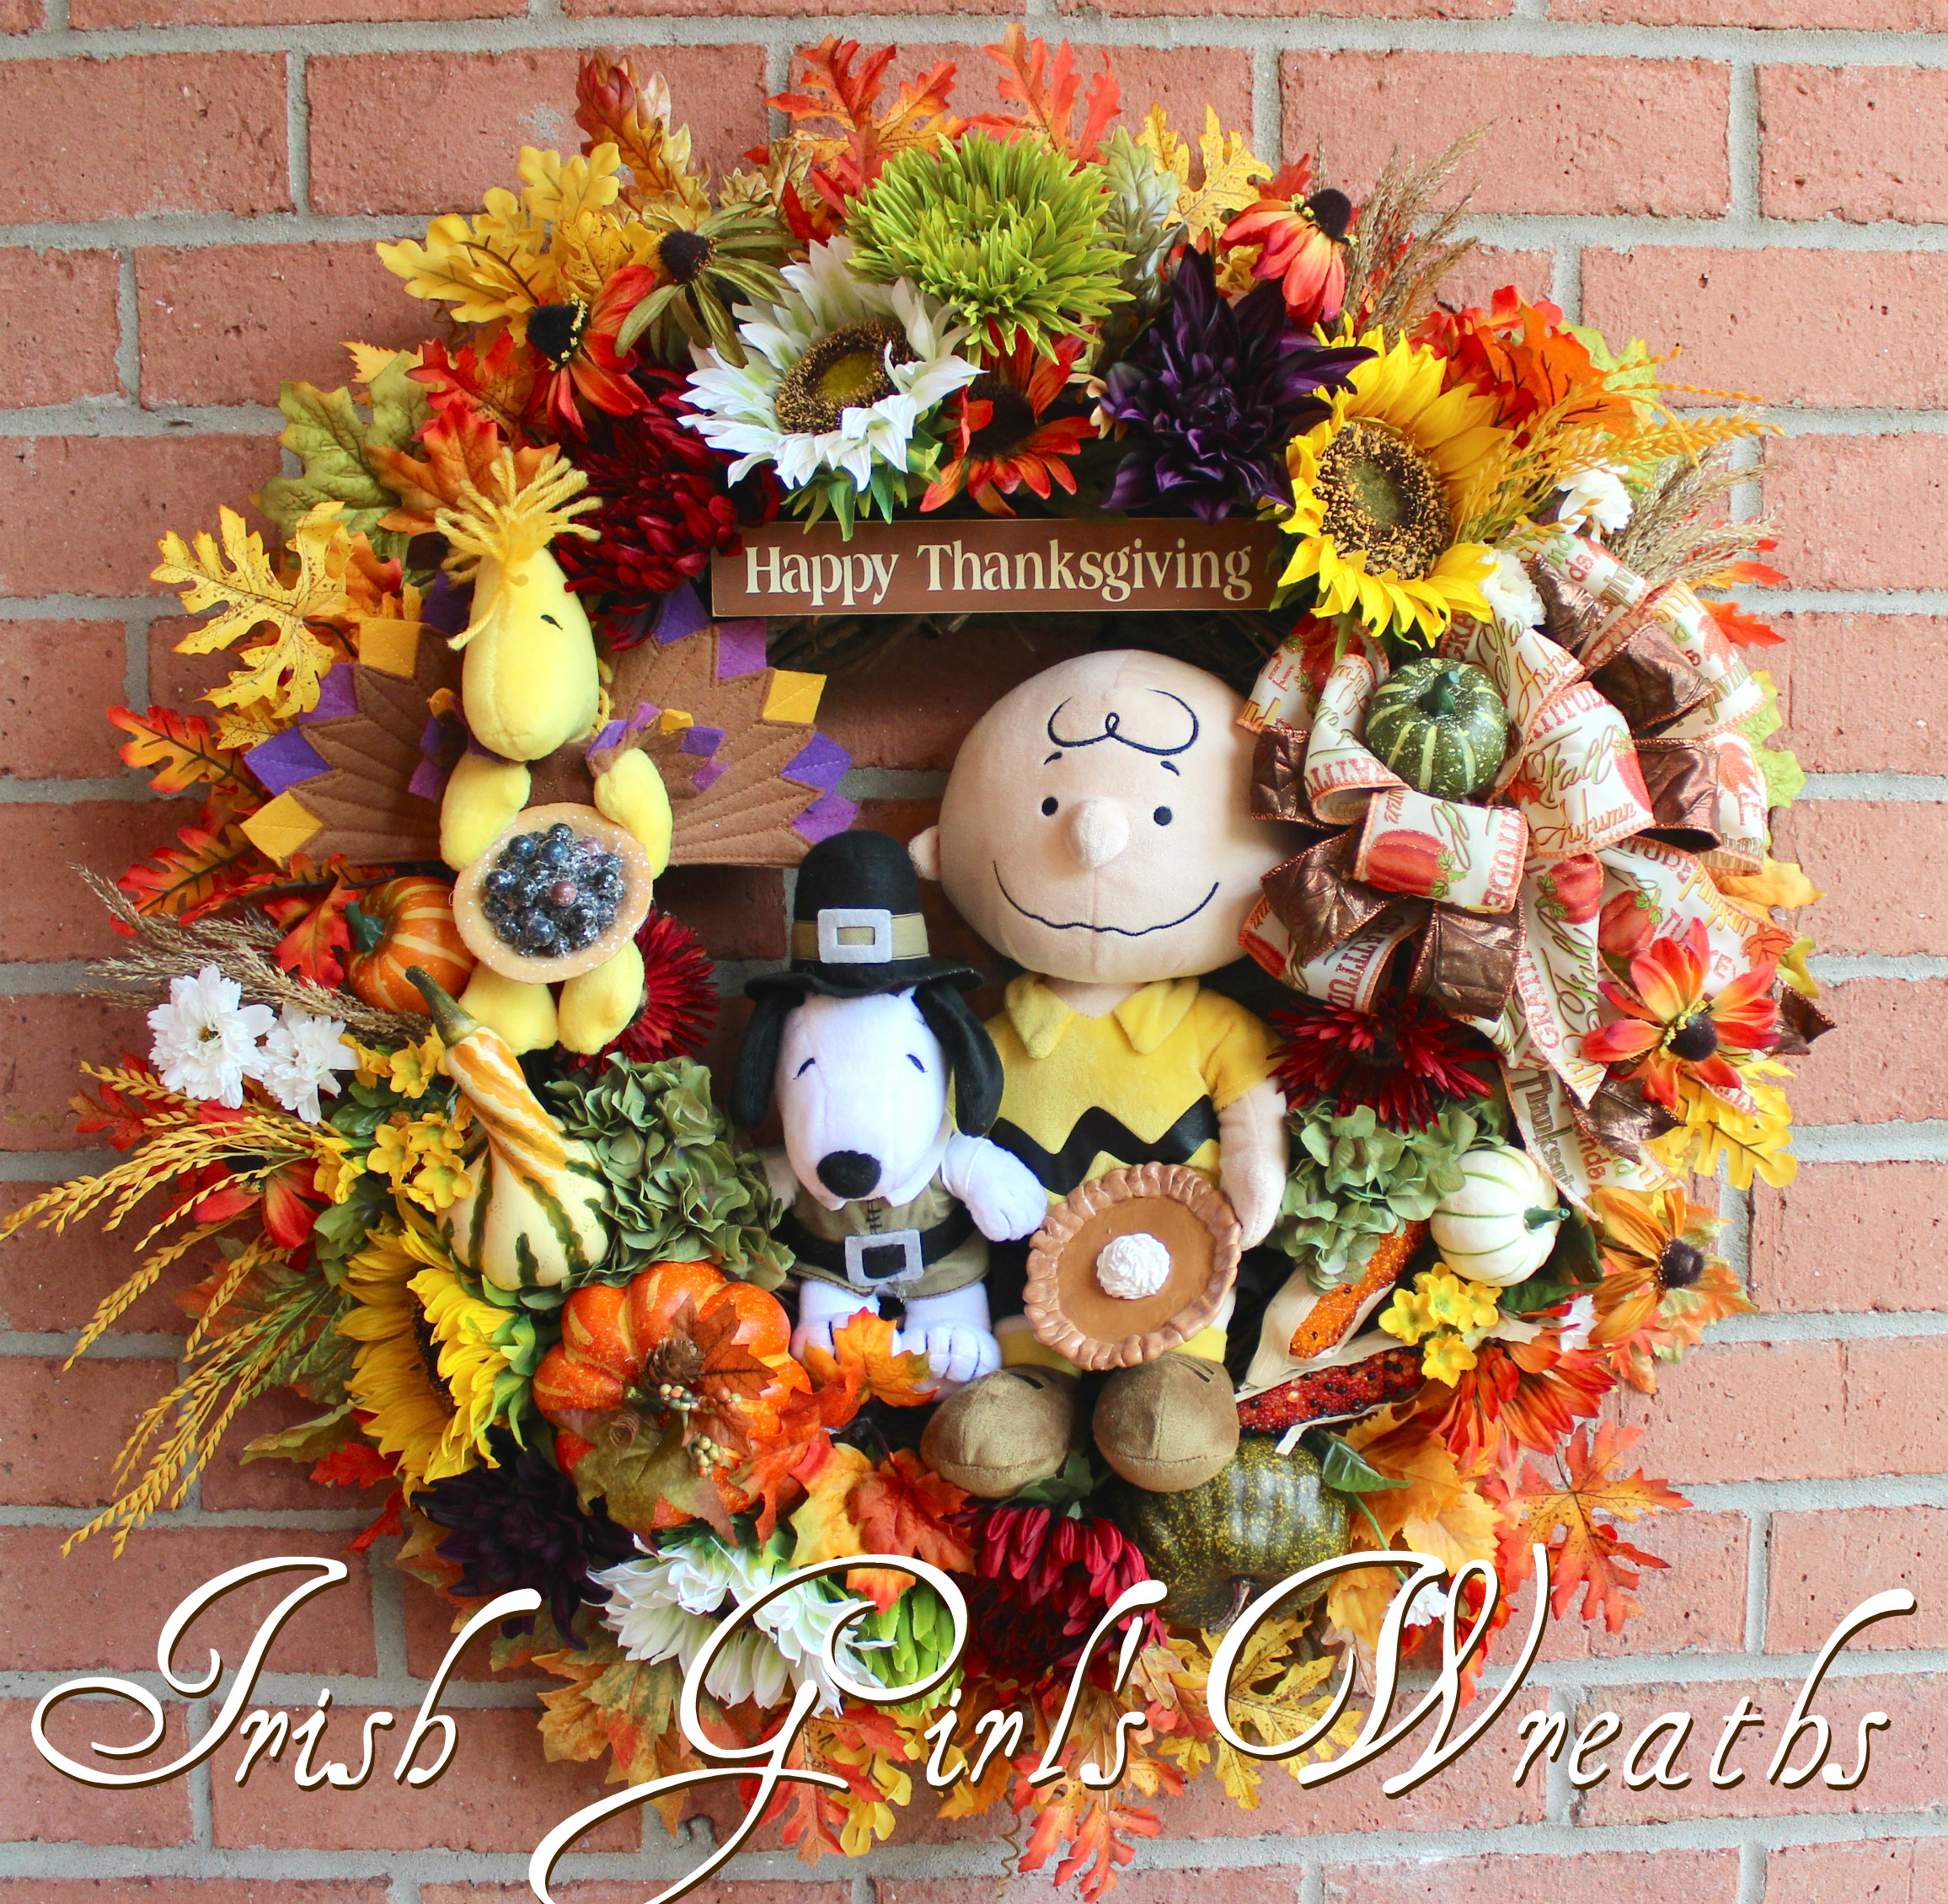 Deluxe Charlie Brown Thanksgiving Wreath, Custom for Cindi